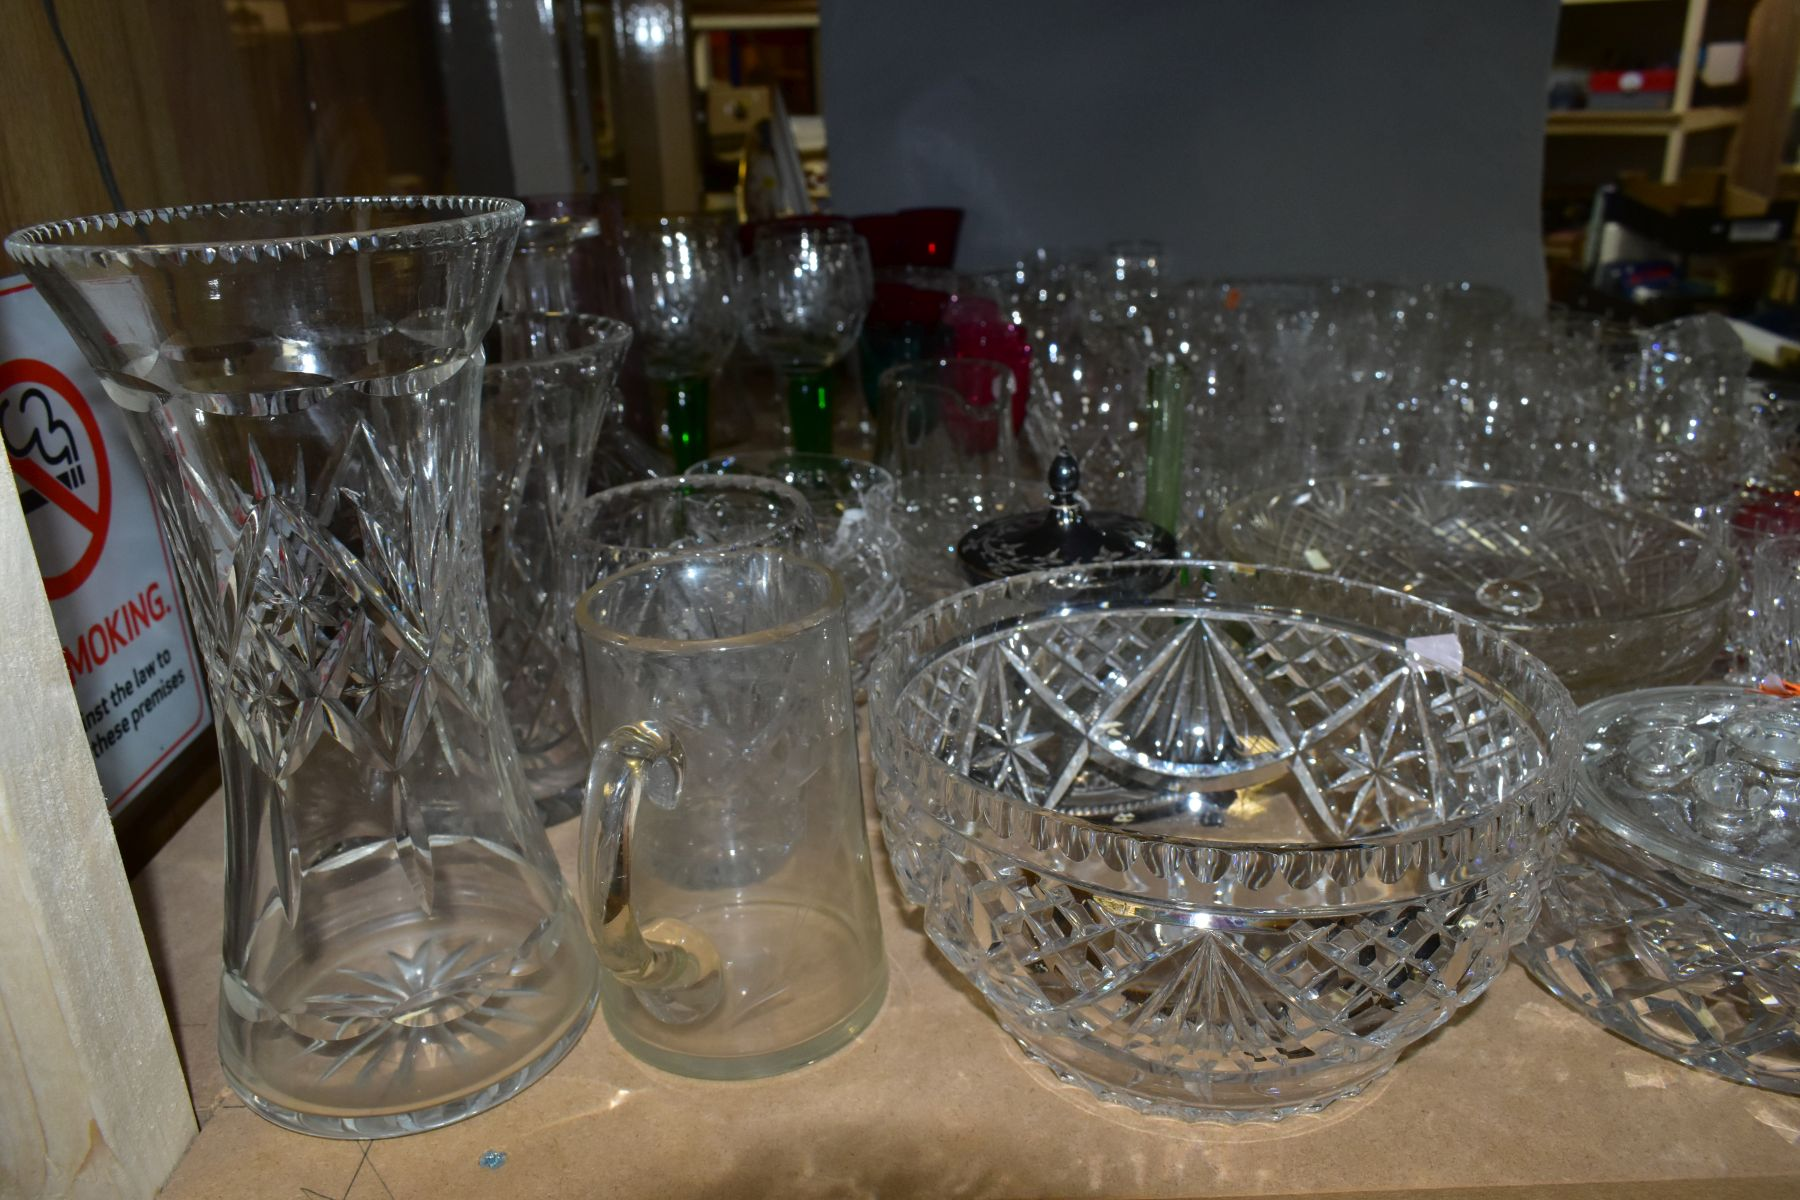 A QUANTITY OF GLASSWARE, including a Waterford Crystal quartz mantel clock, height 11cm, coloured - Image 8 of 9